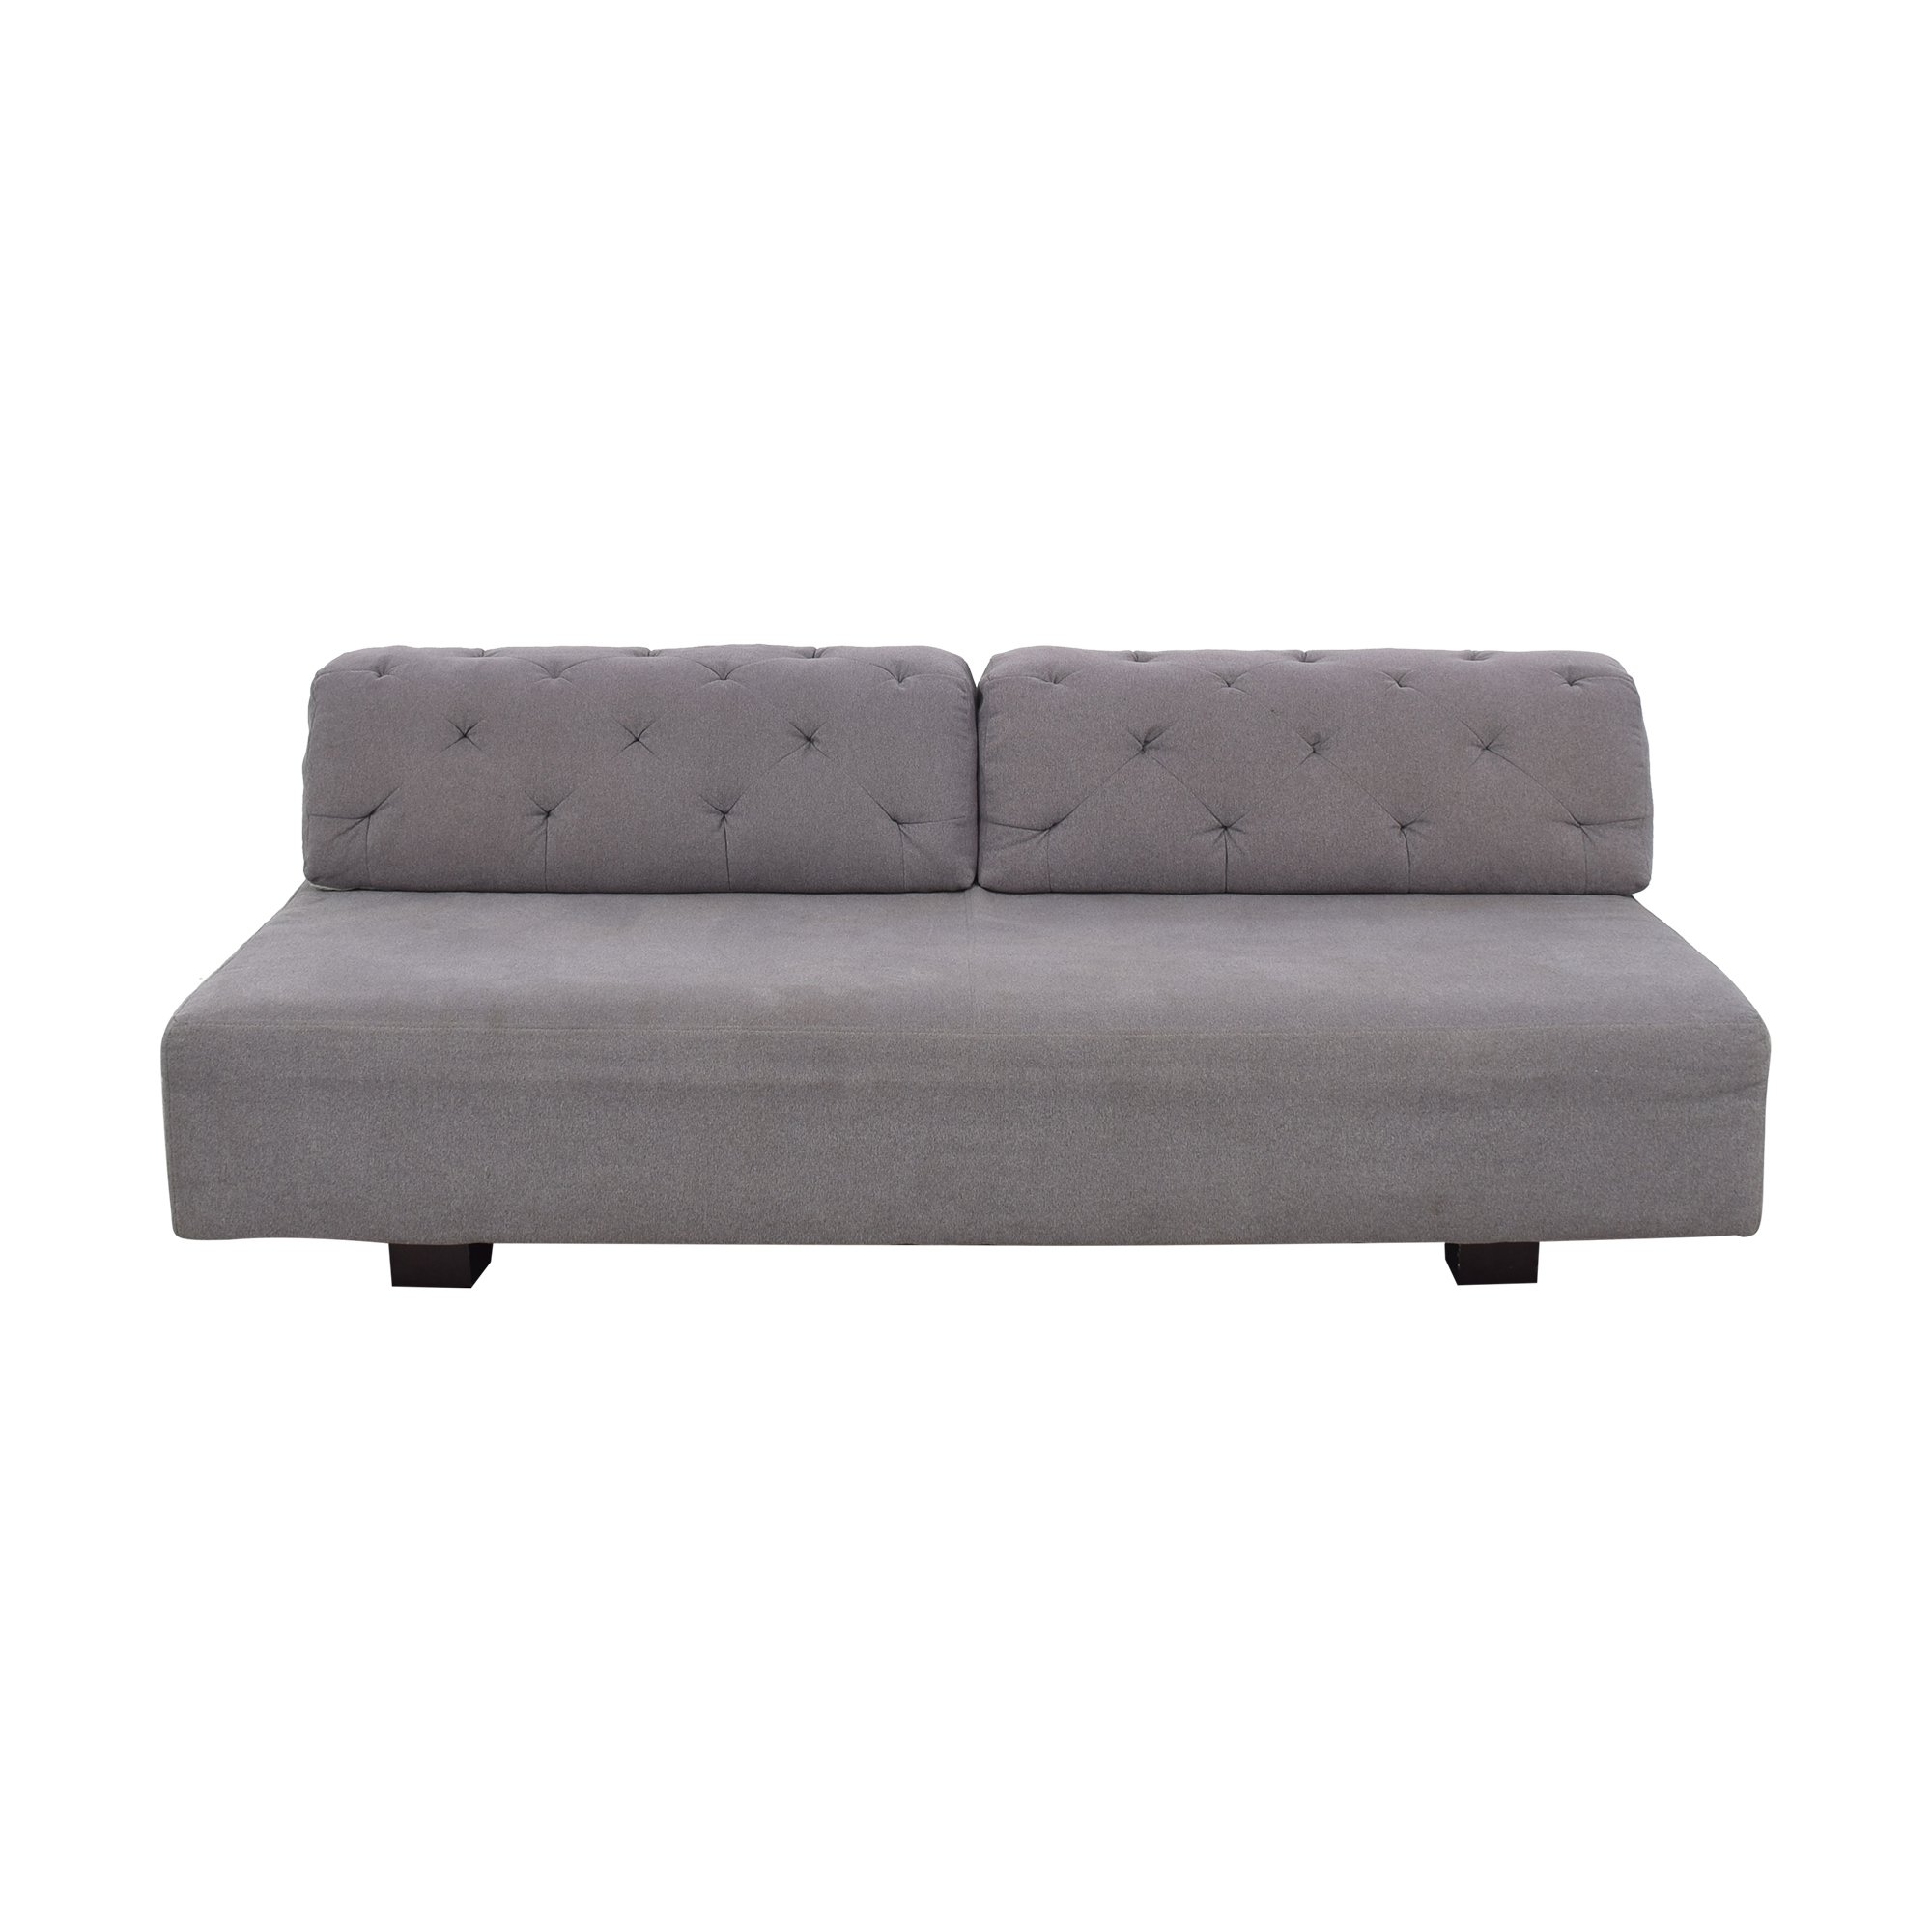 buy West Elm Tillary Sofa with Tufted Back Cushions West Elm